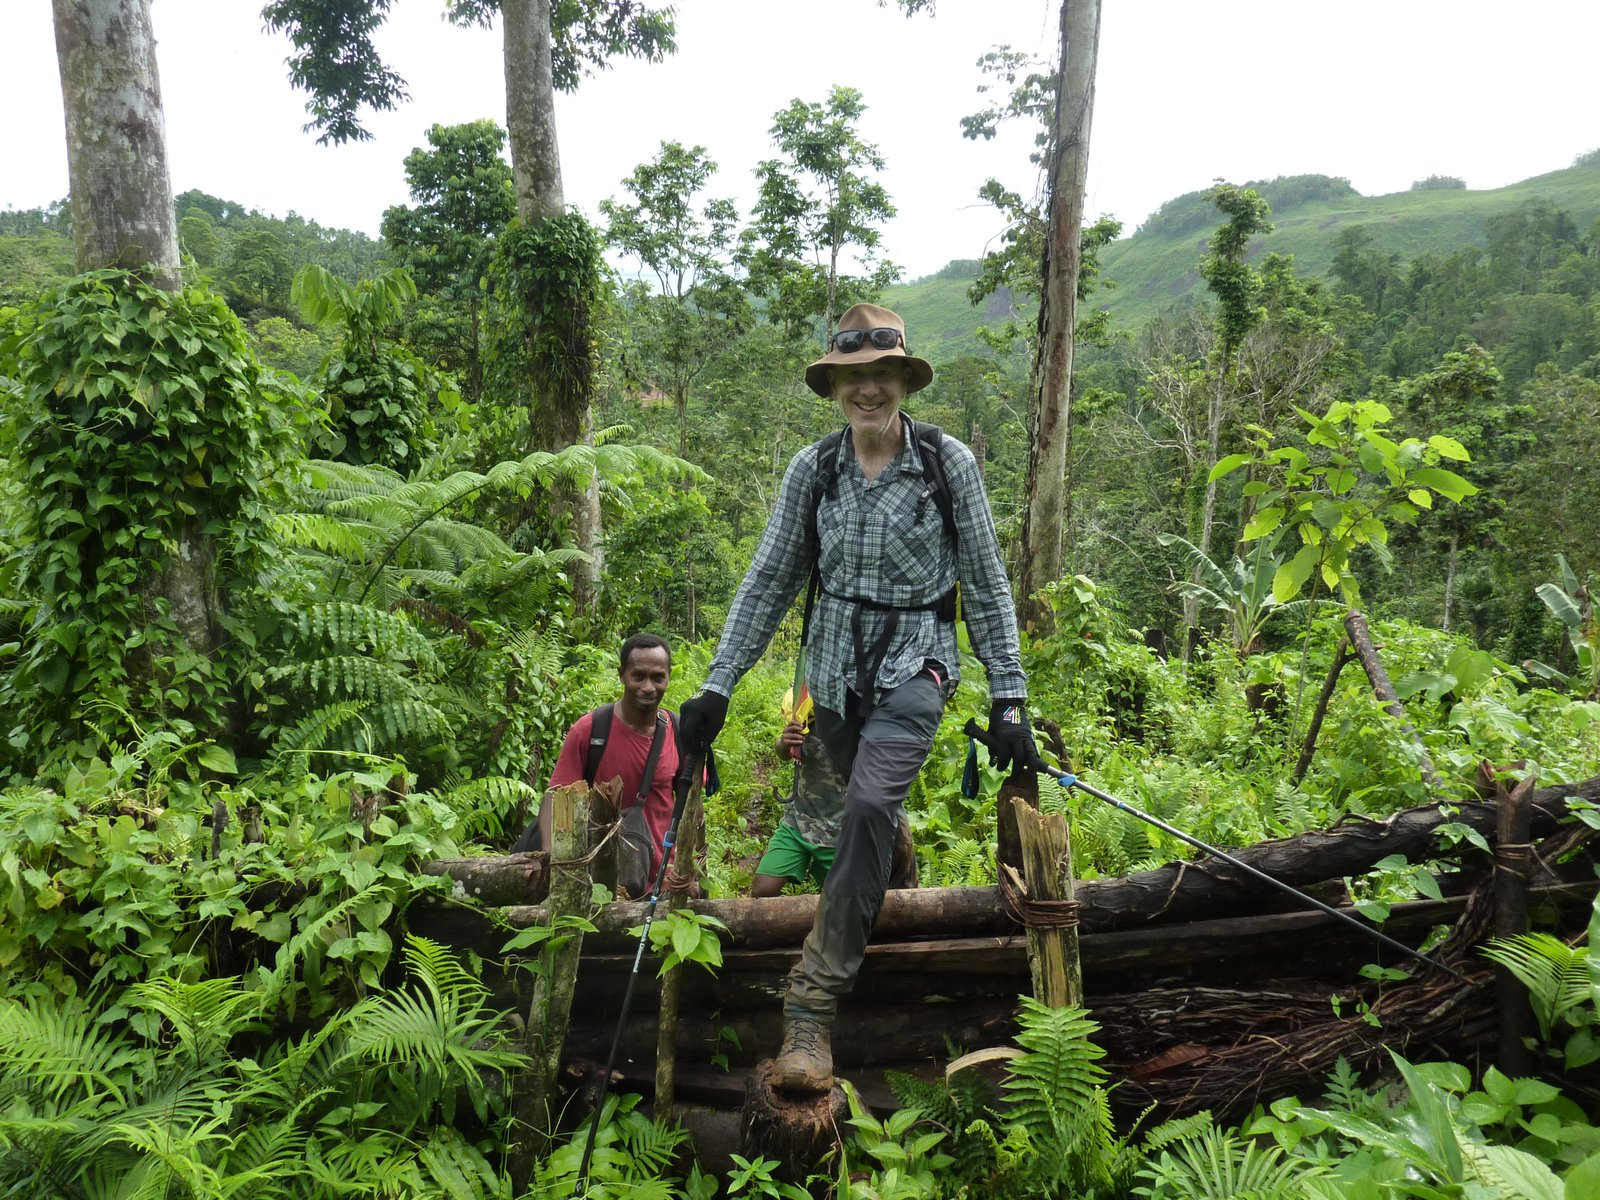 Jim Phillipson makes the trek through the forests of central Malaita, Solomon Islands